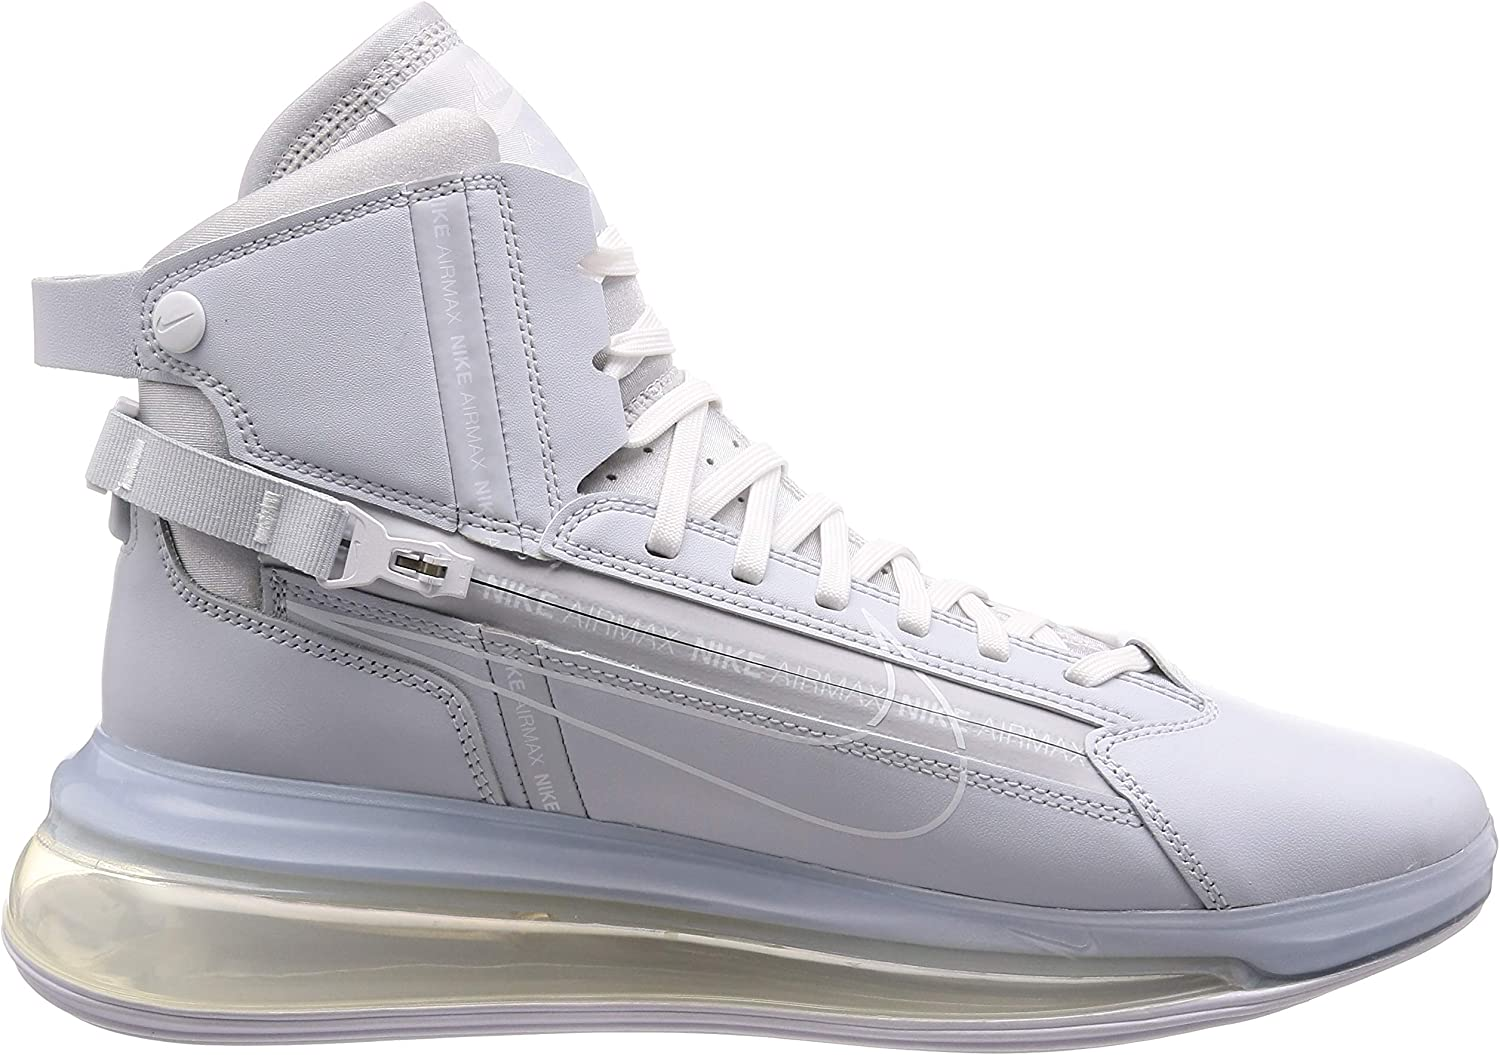 Nike Air Max 720 Satrn, Chaussures de Basketball Homme Gris Pure Platinum White 000